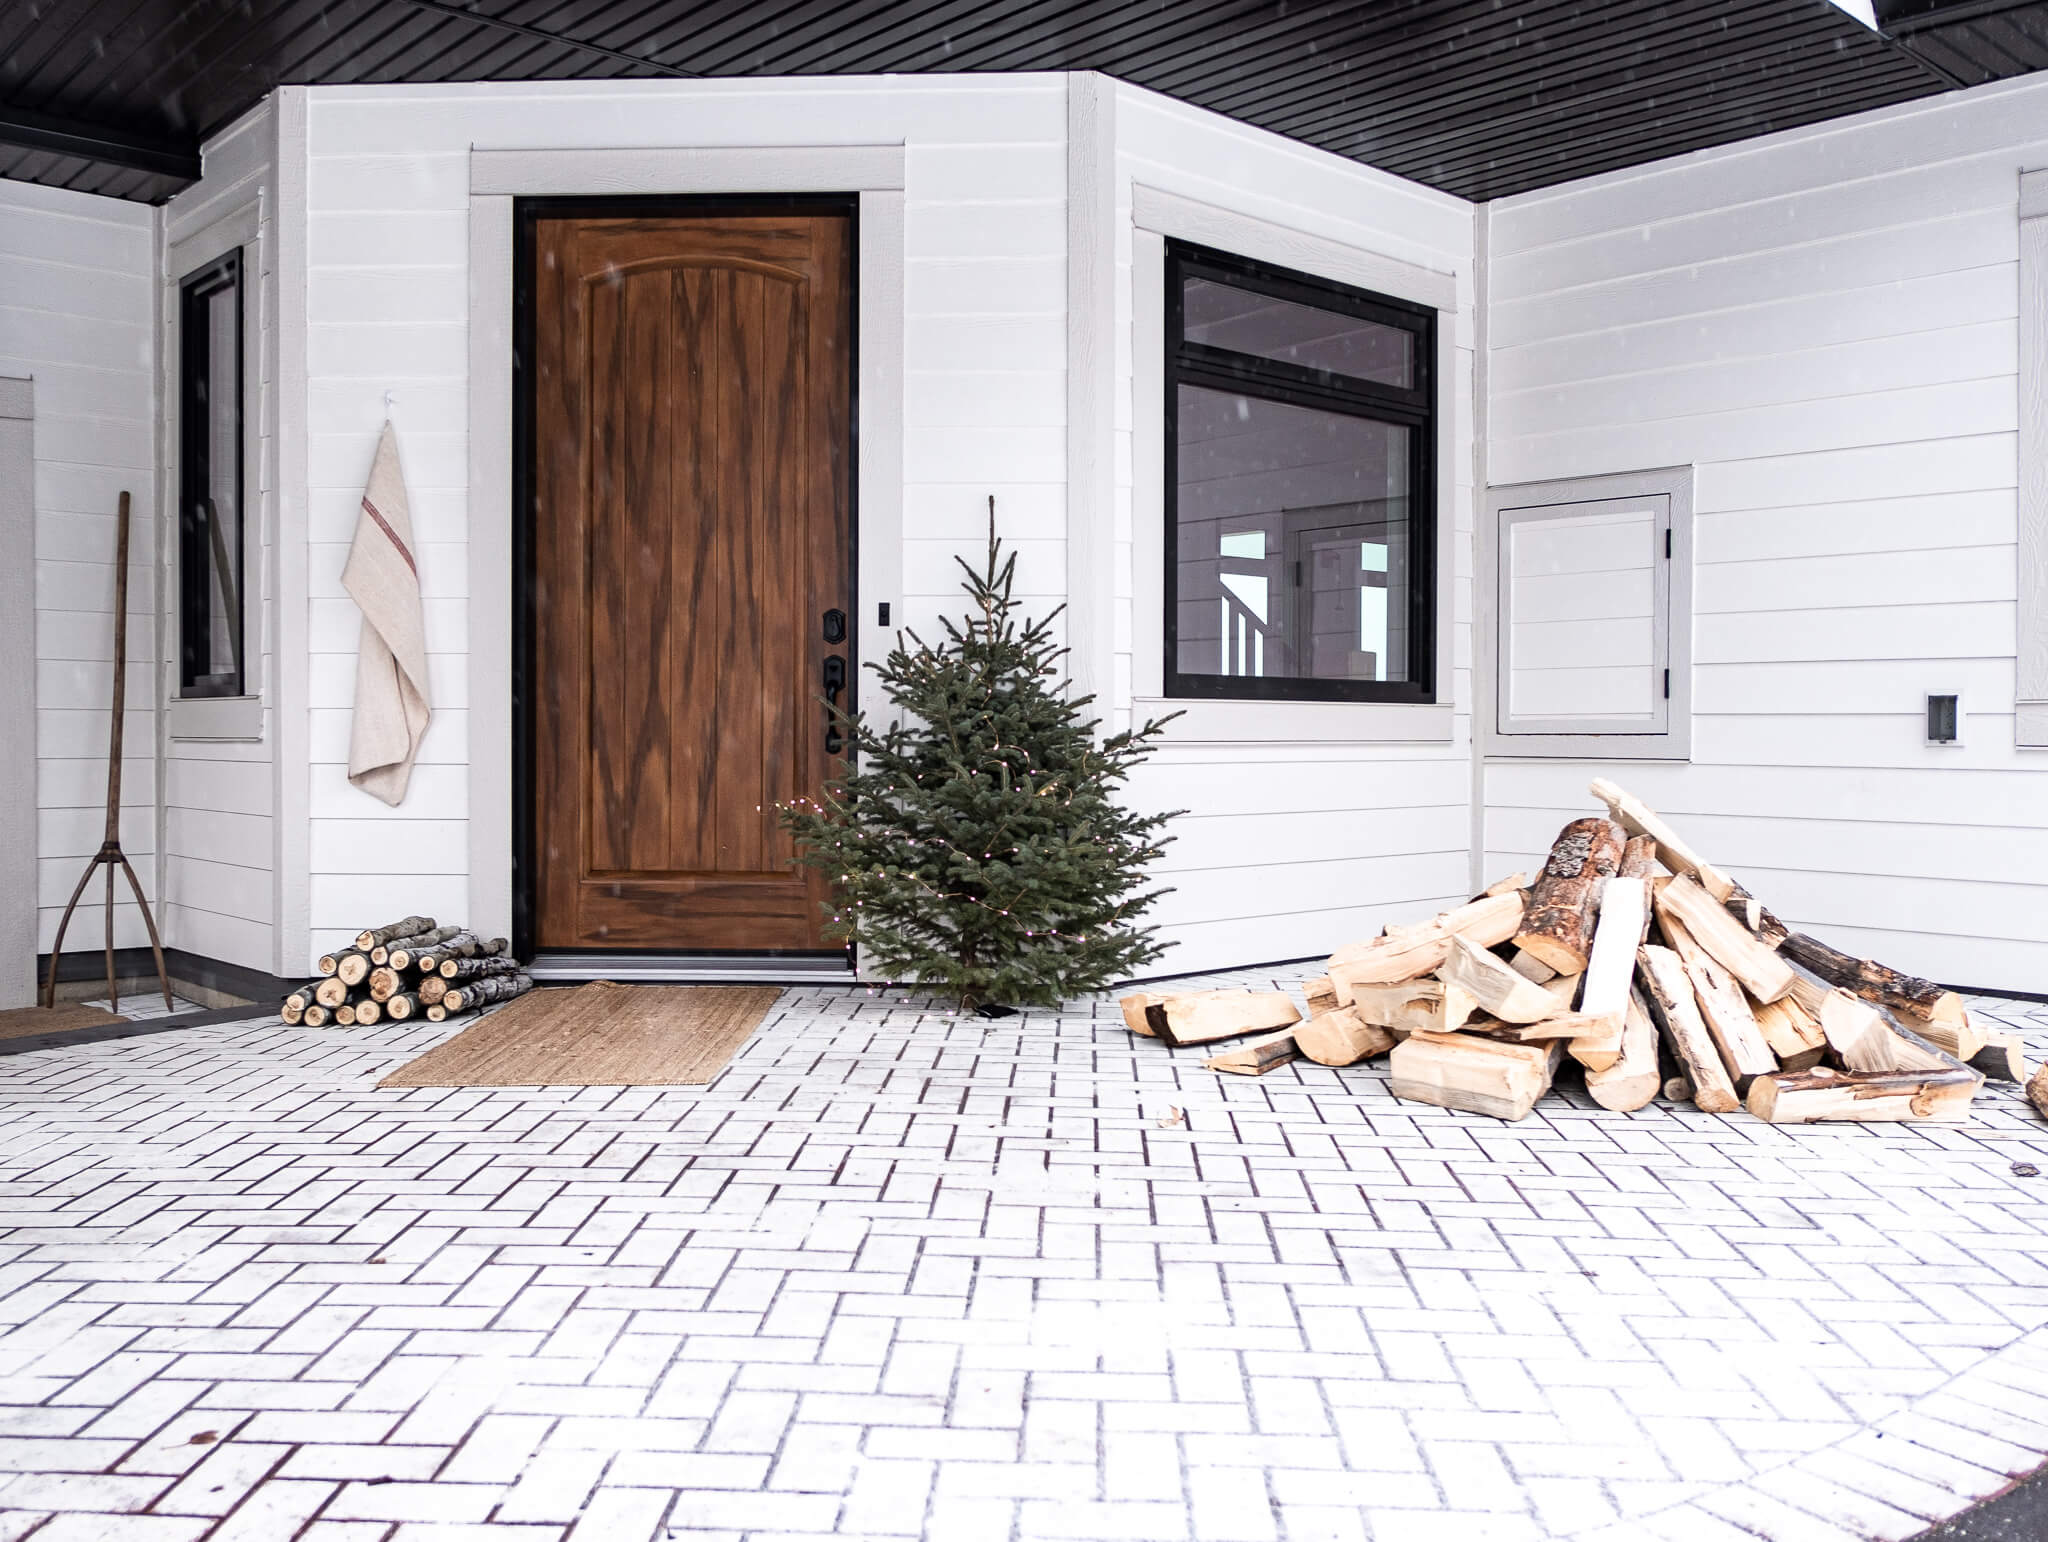 Winter Decorations on your front porch